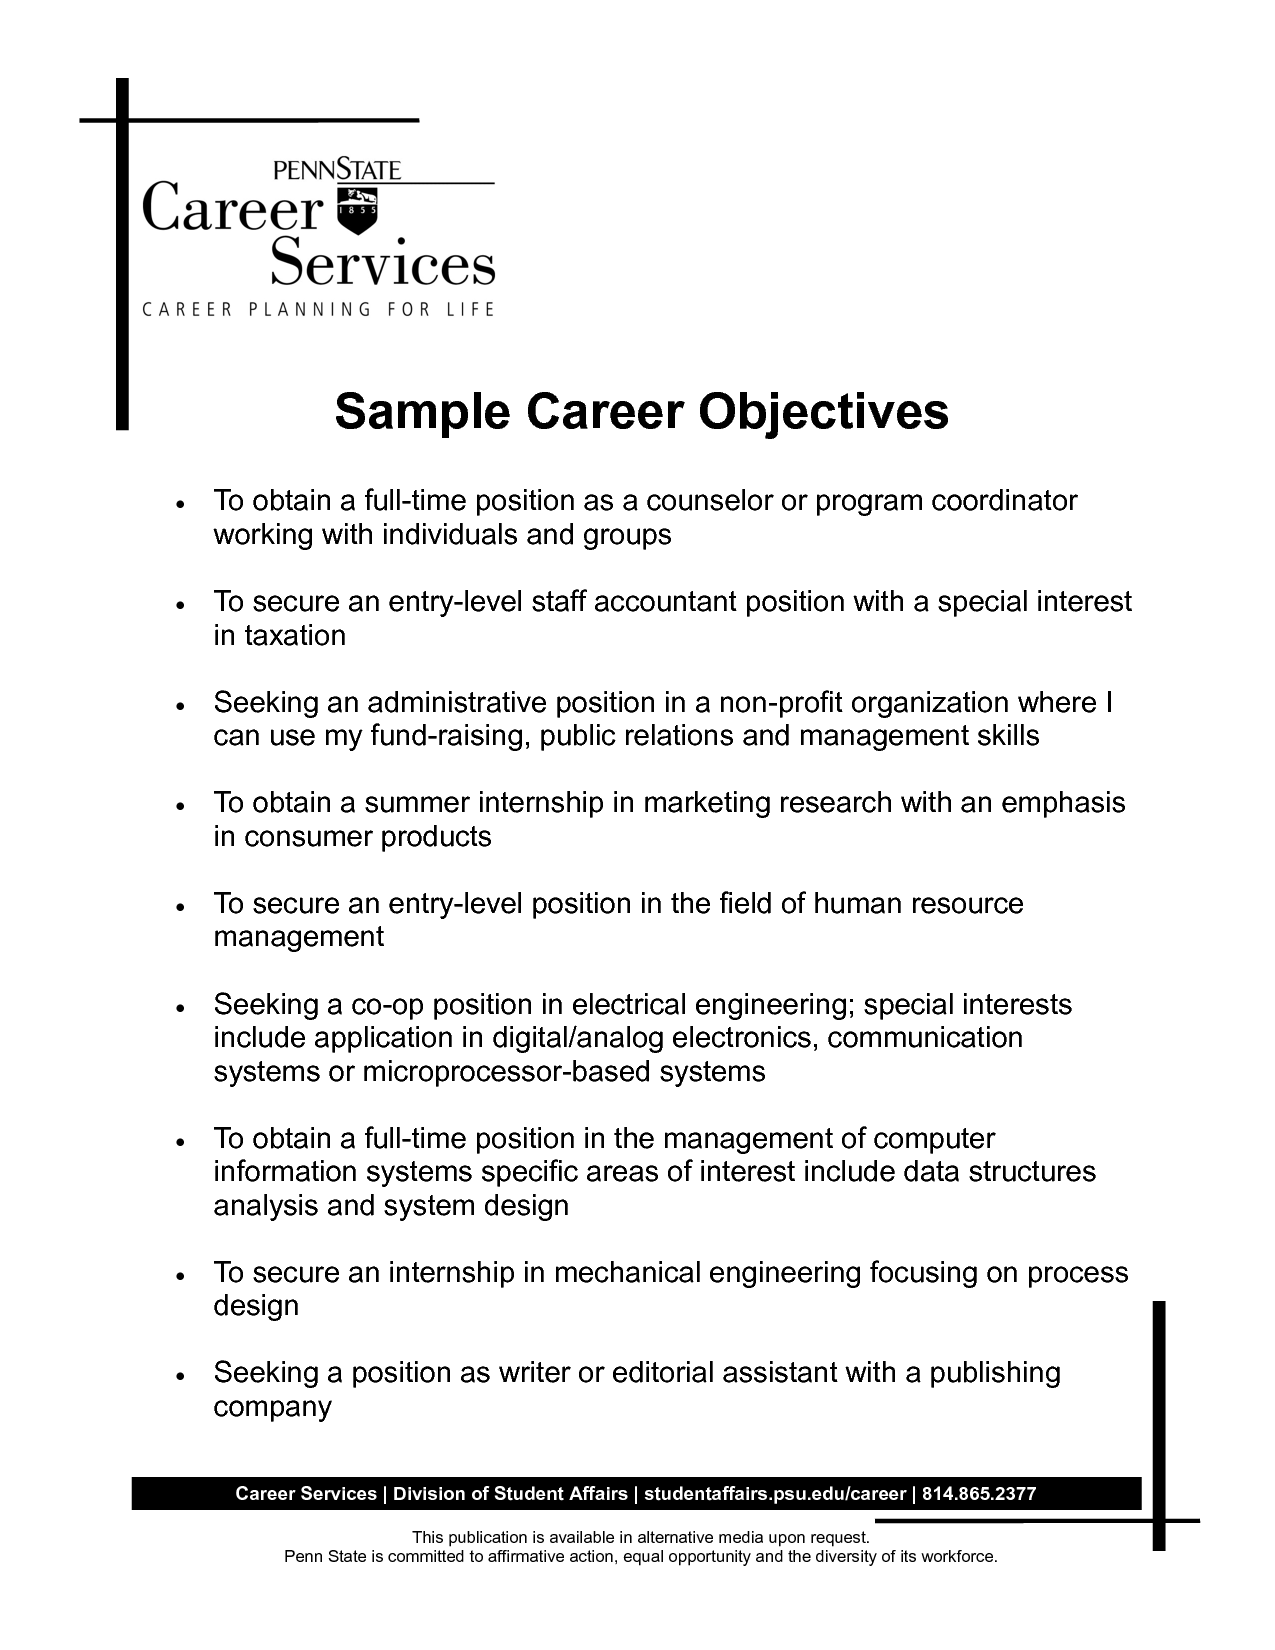 Career objective resume accountant httpresumecareerfo career objective resume accountant httpresumecareerfocareer objective resume accountant 17 altavistaventures